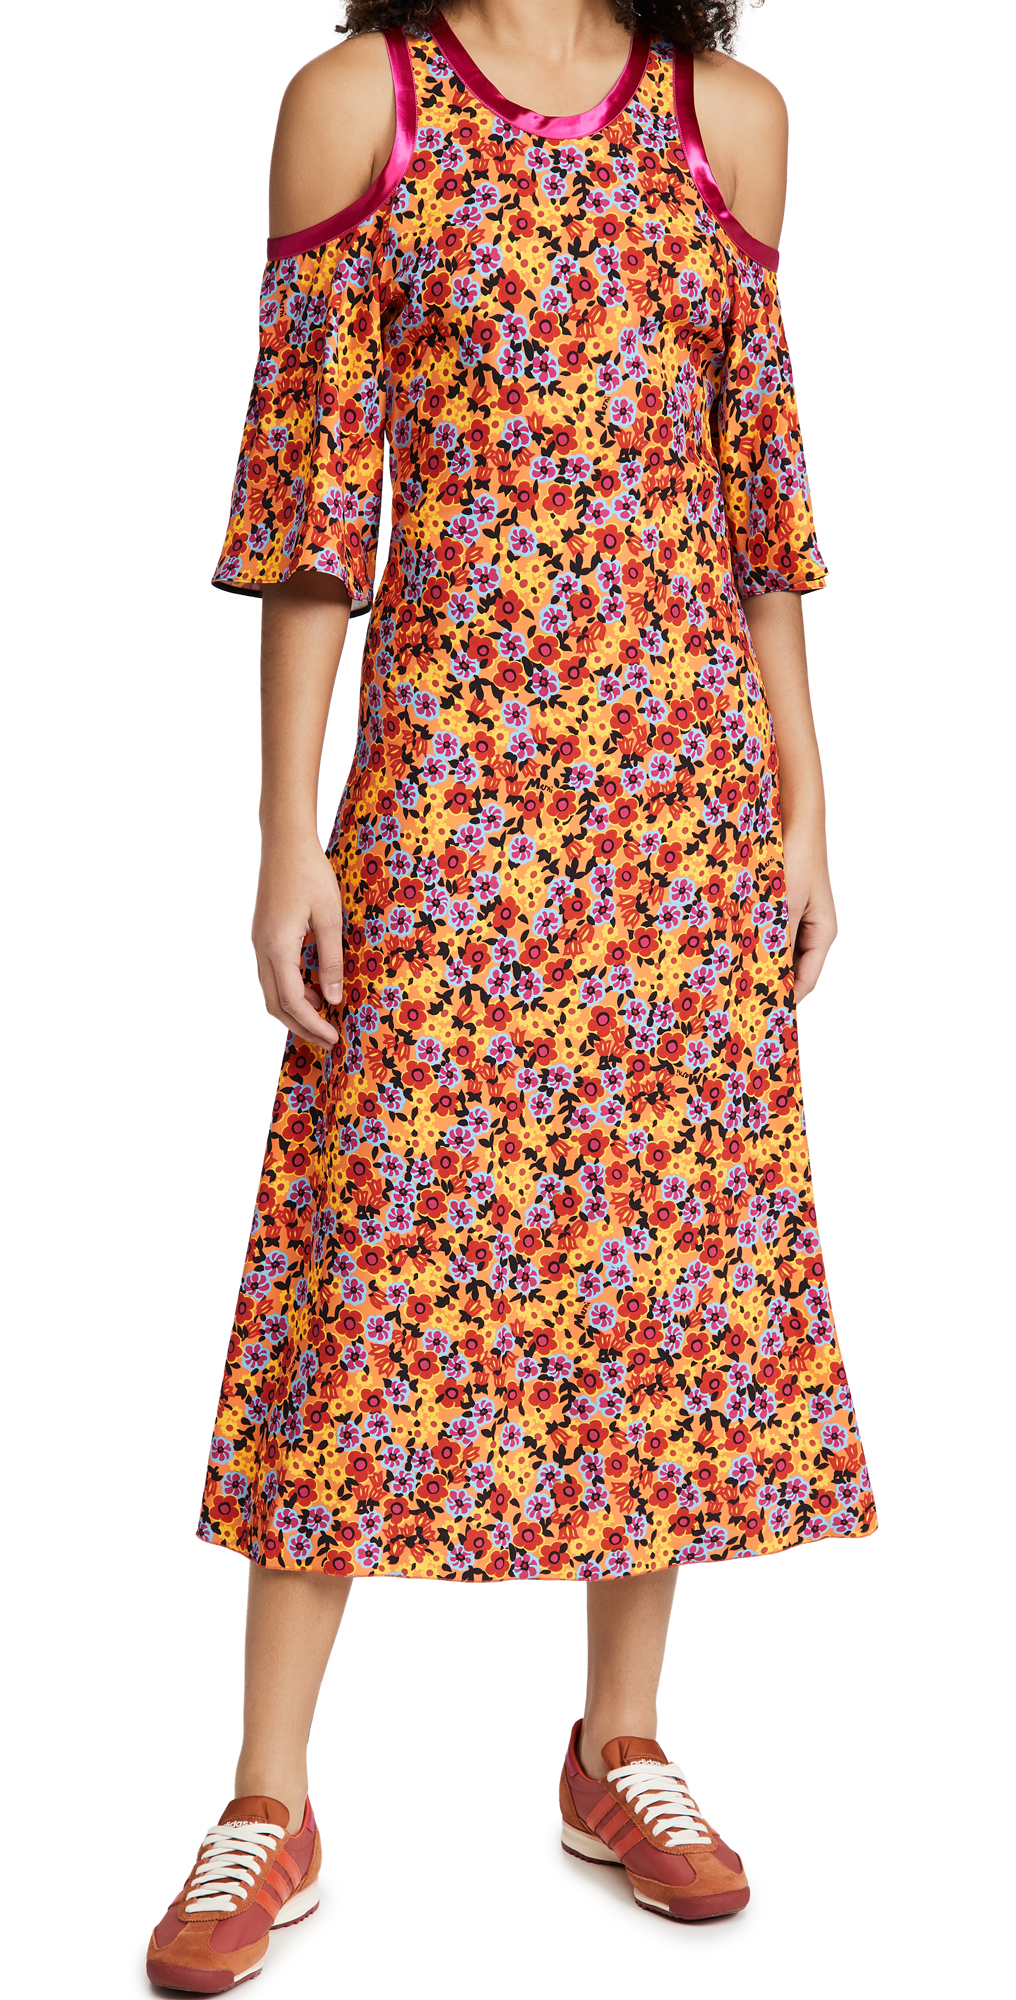 Marni Floral Cold Shoulder Dress